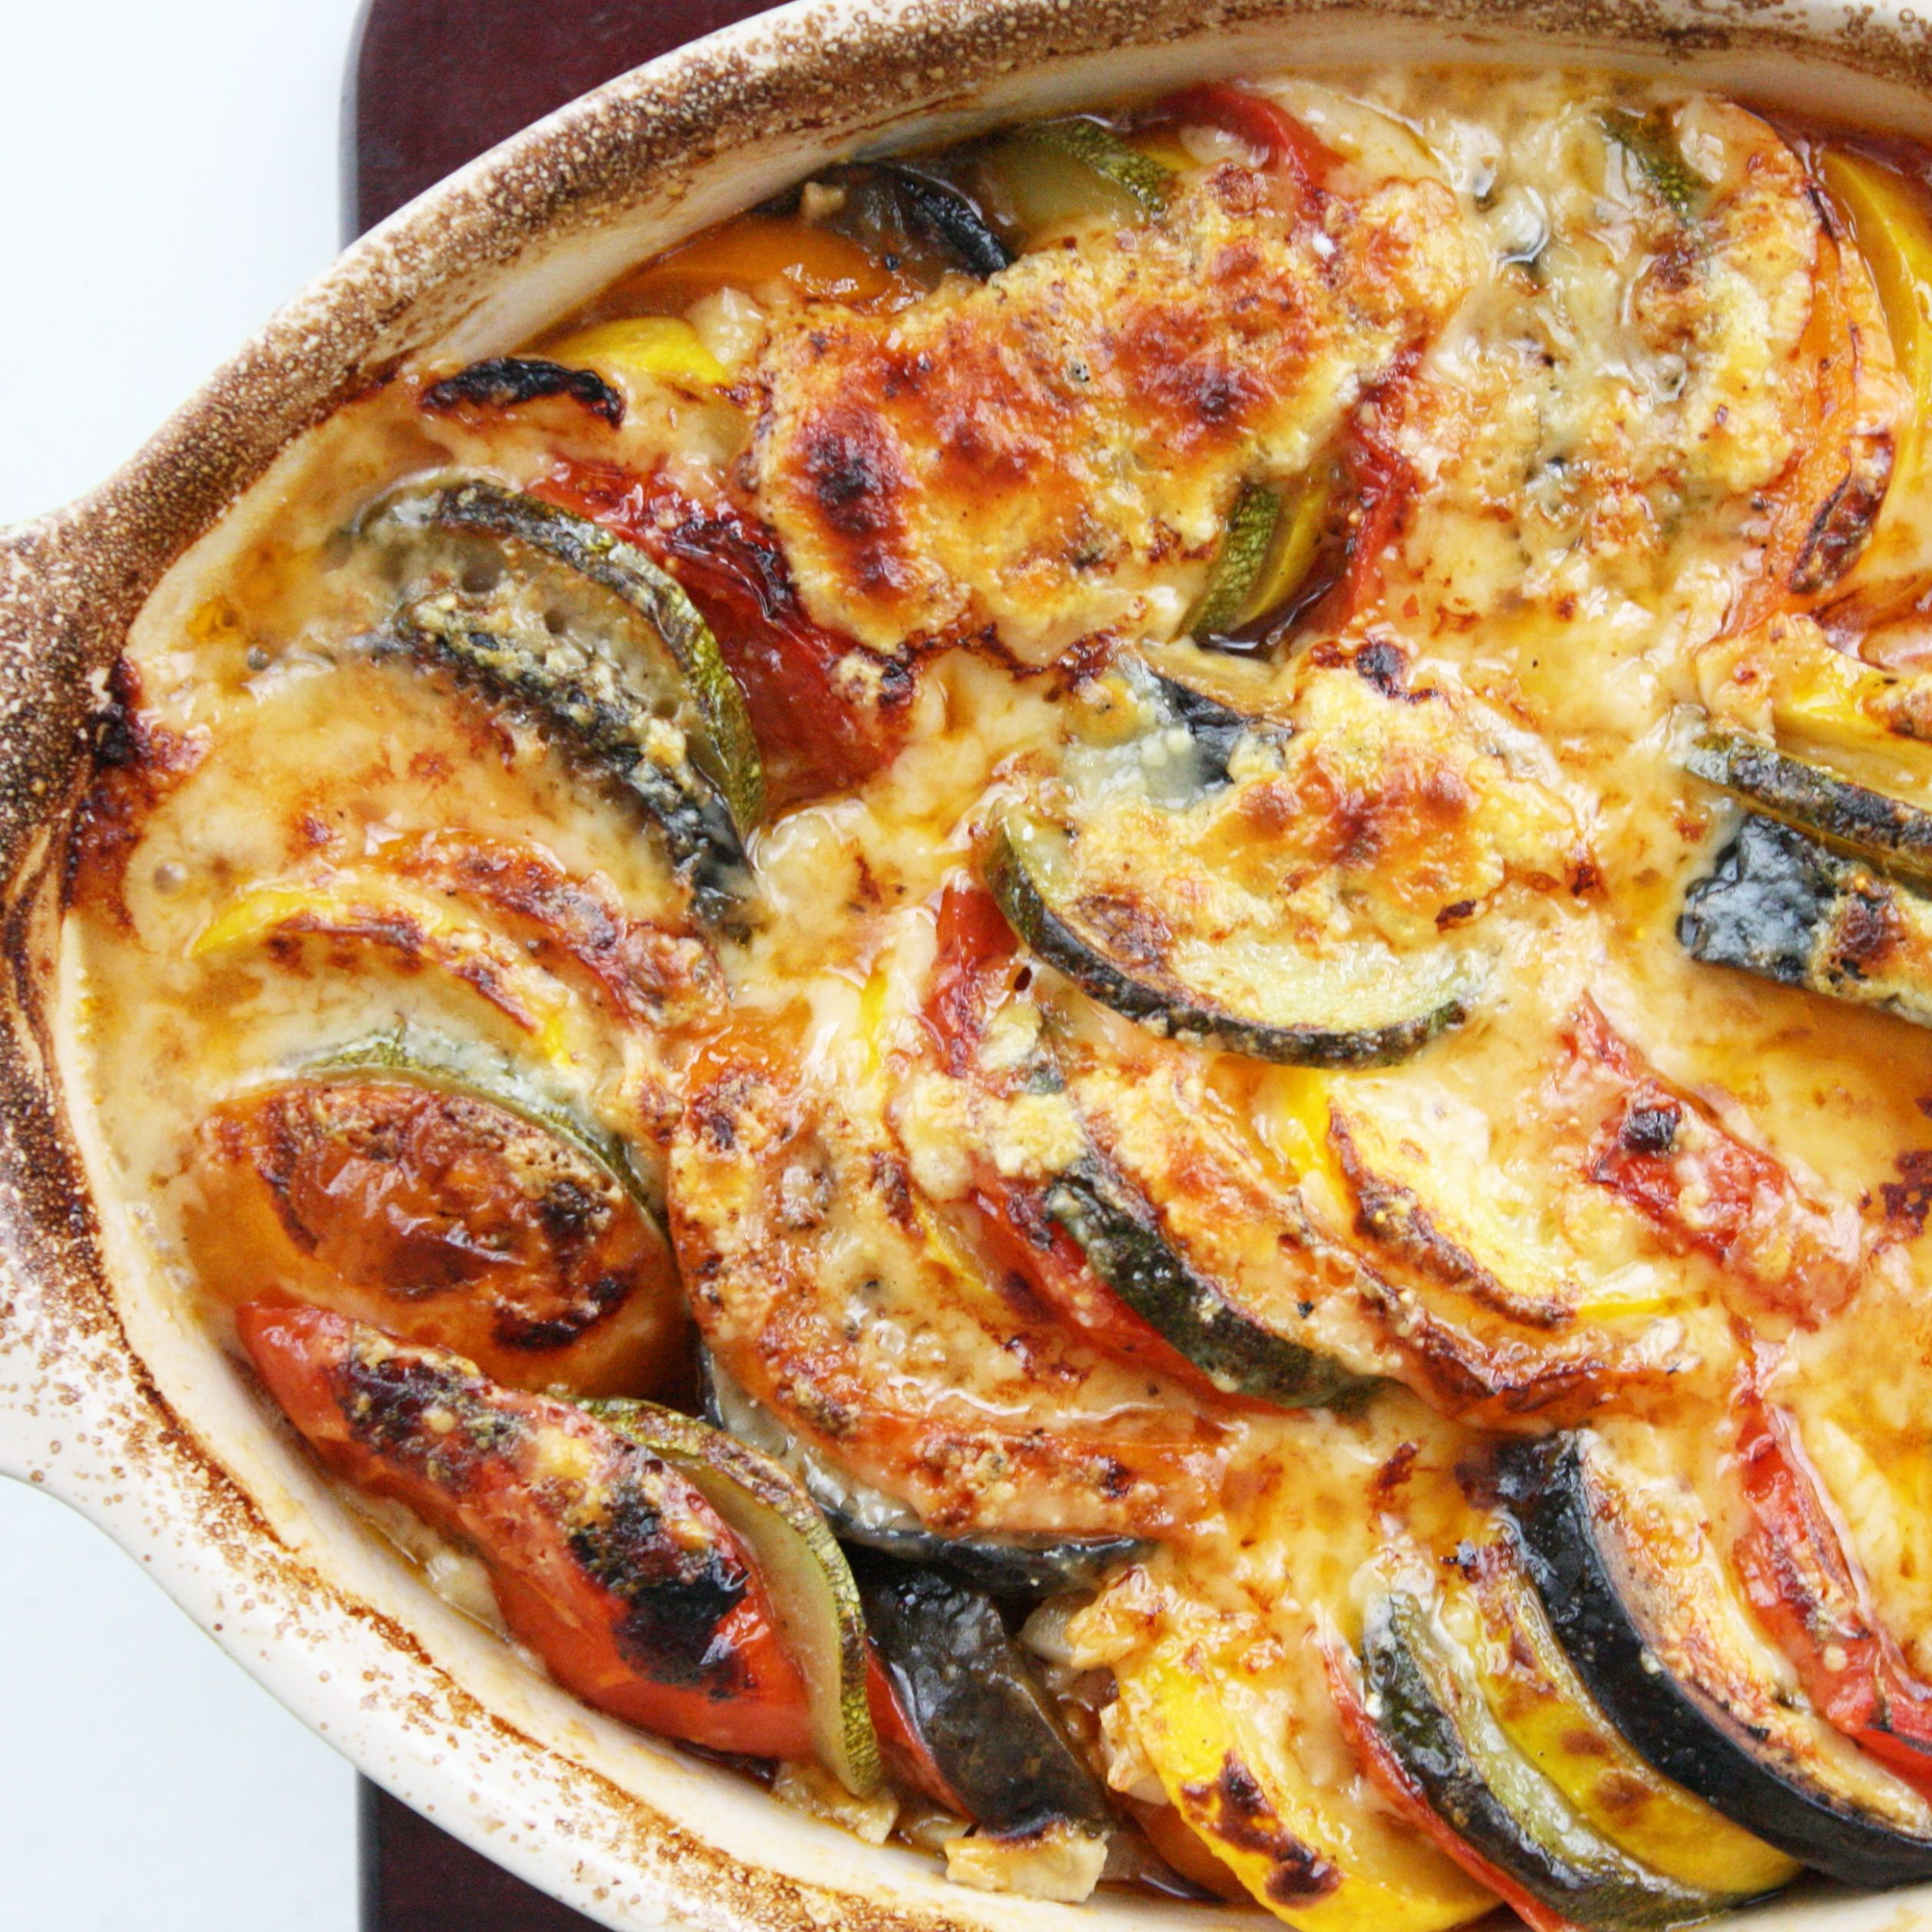 Original Baked Ratatouille – Healthy Vegetable Dish Recipes for ..